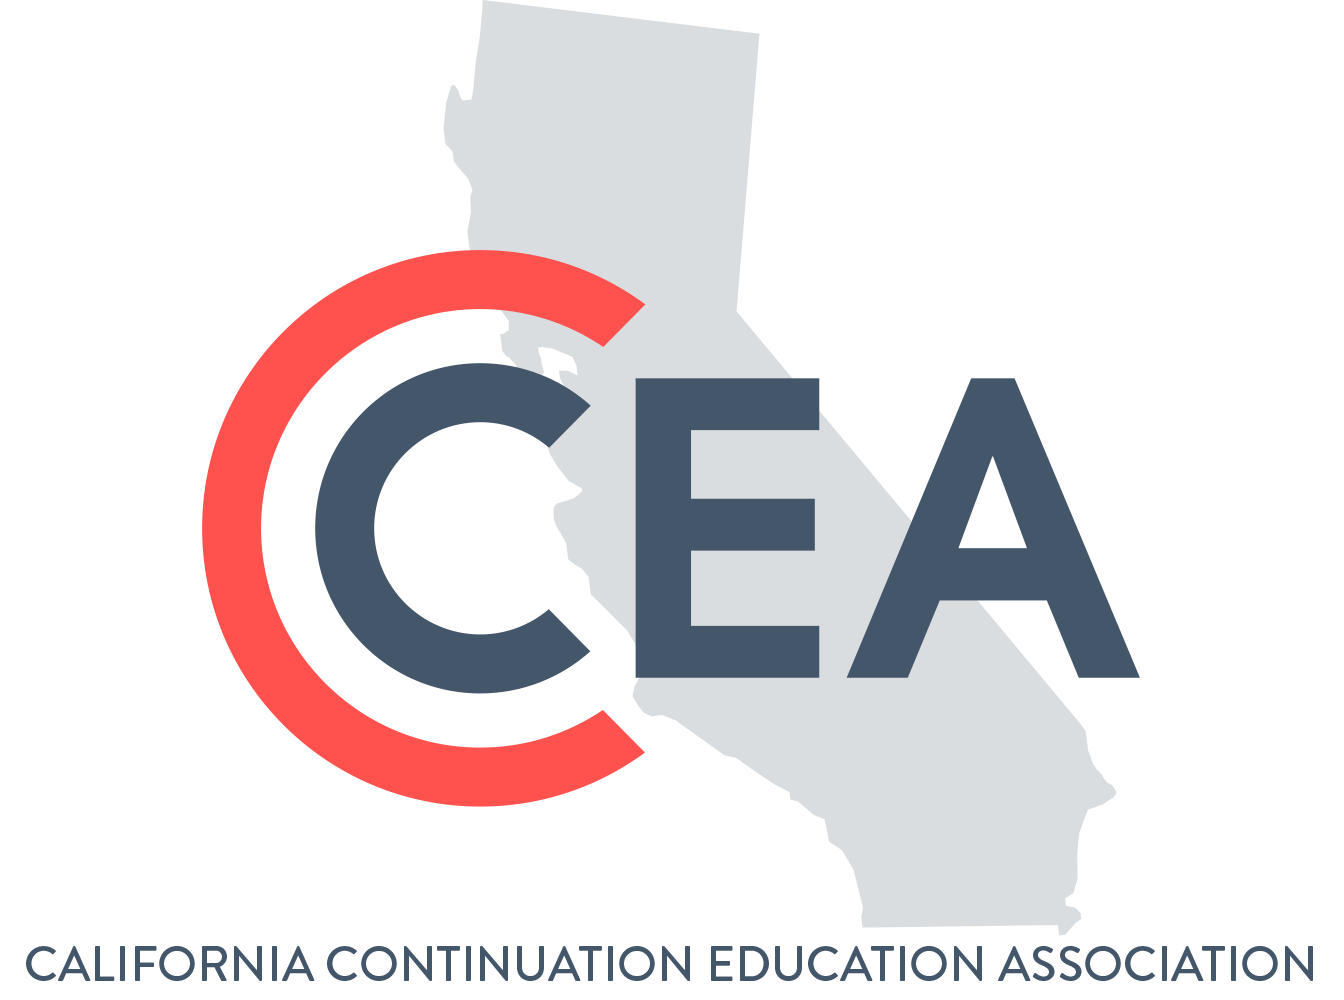 California Continuation Education Association (CCEA)